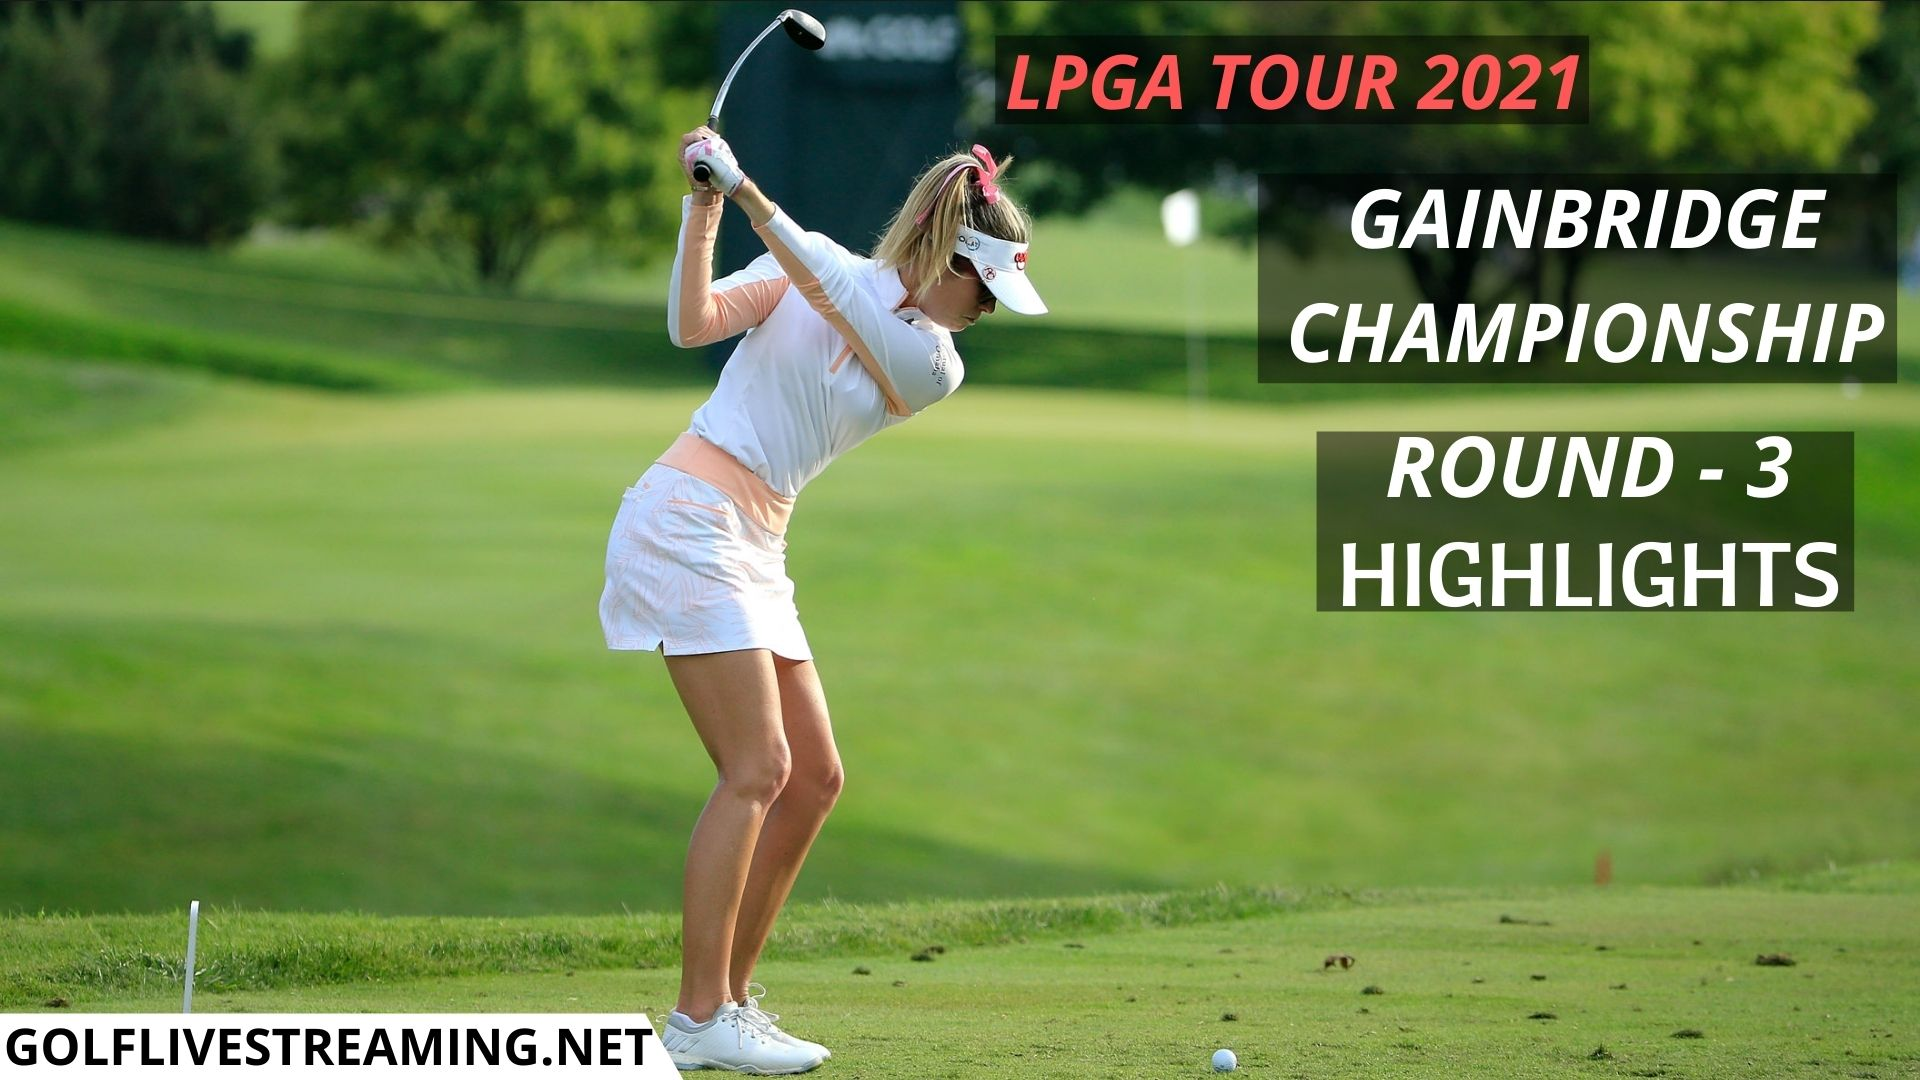 Gainbridge Championship Round 3 Highlights 2021 LPGA Tour